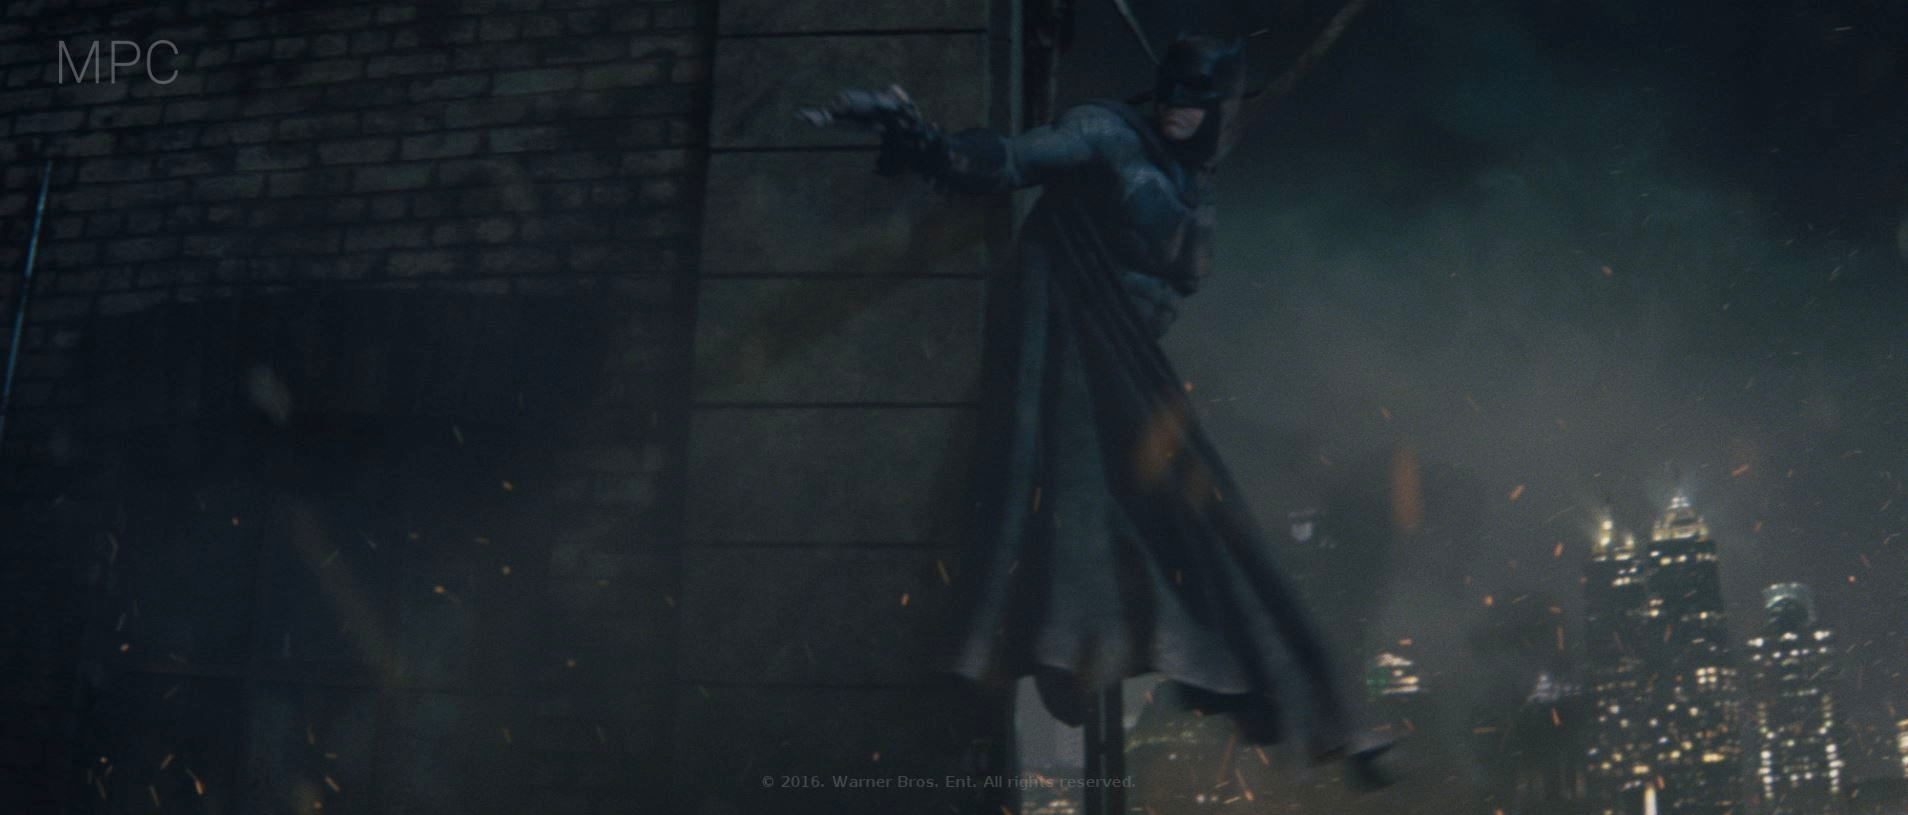 Batman and Building Look Dev. and Shot Lighting (Full CG)